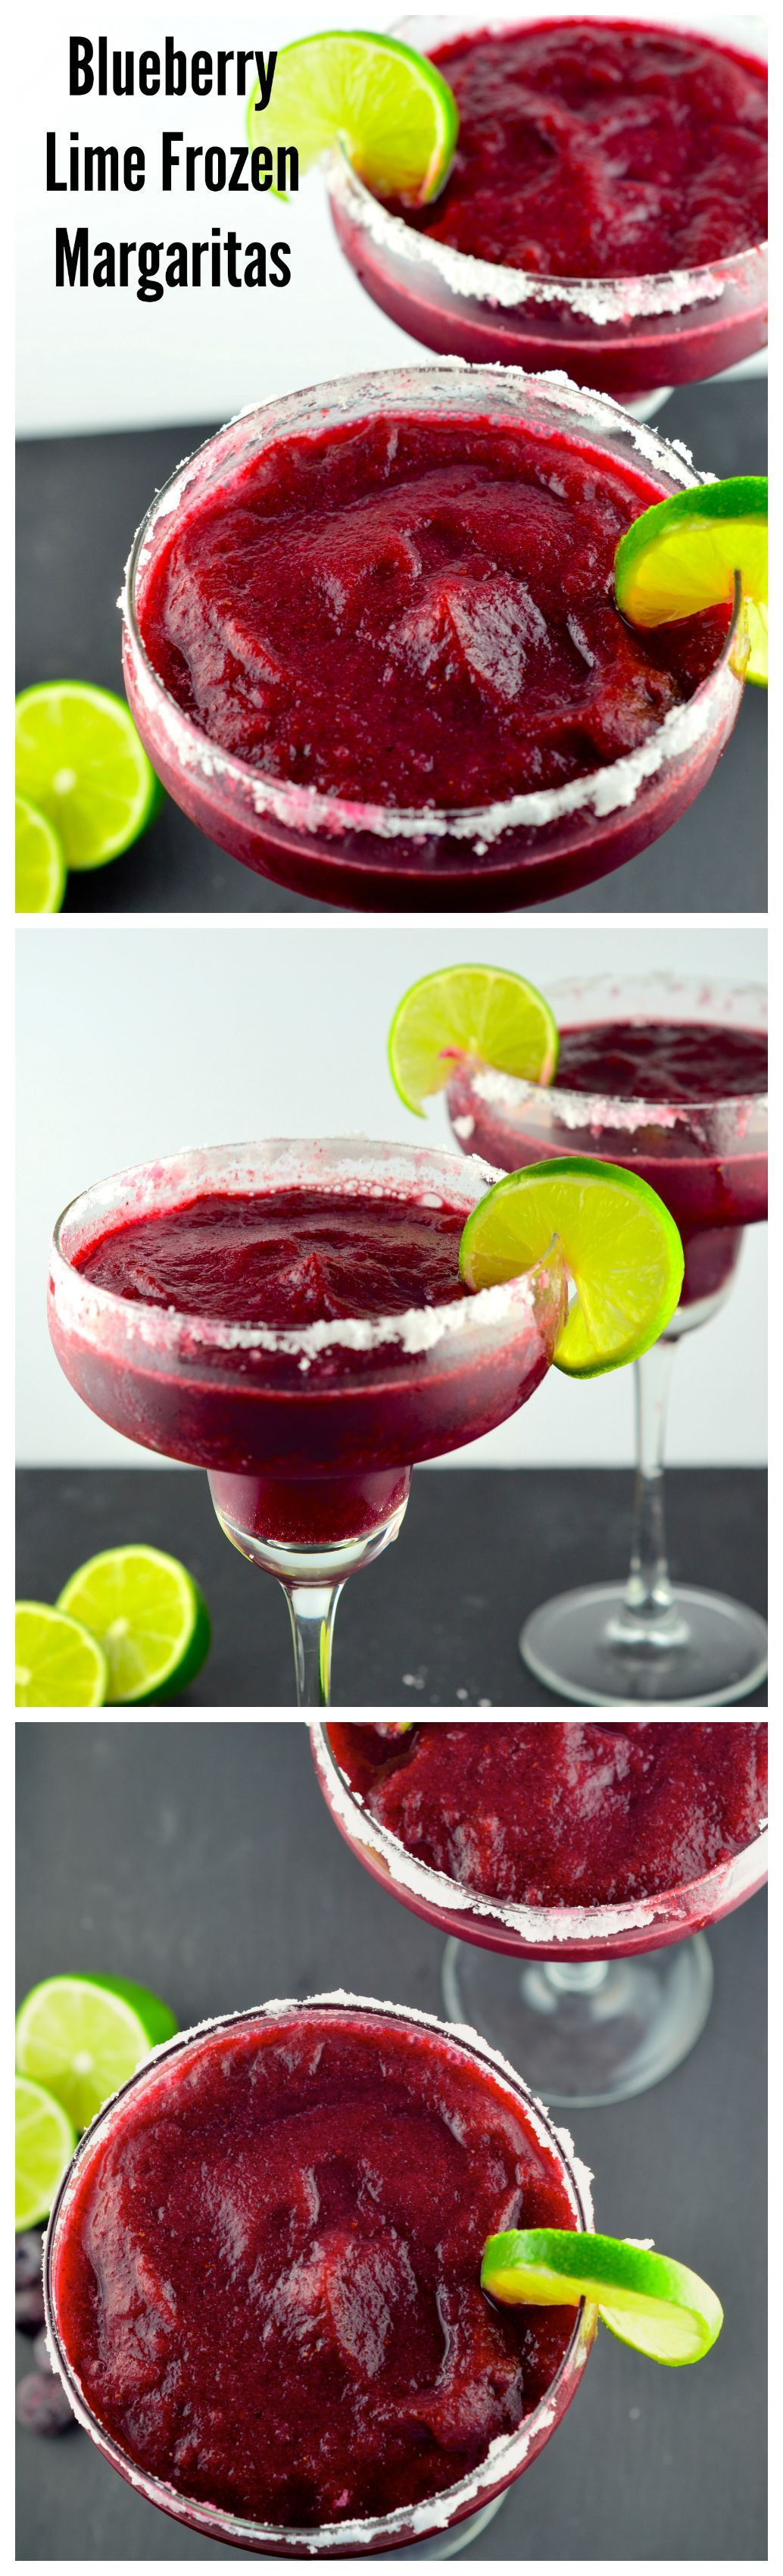 Blueberry Lime Frozen Margaritas - May I Have That Recipe